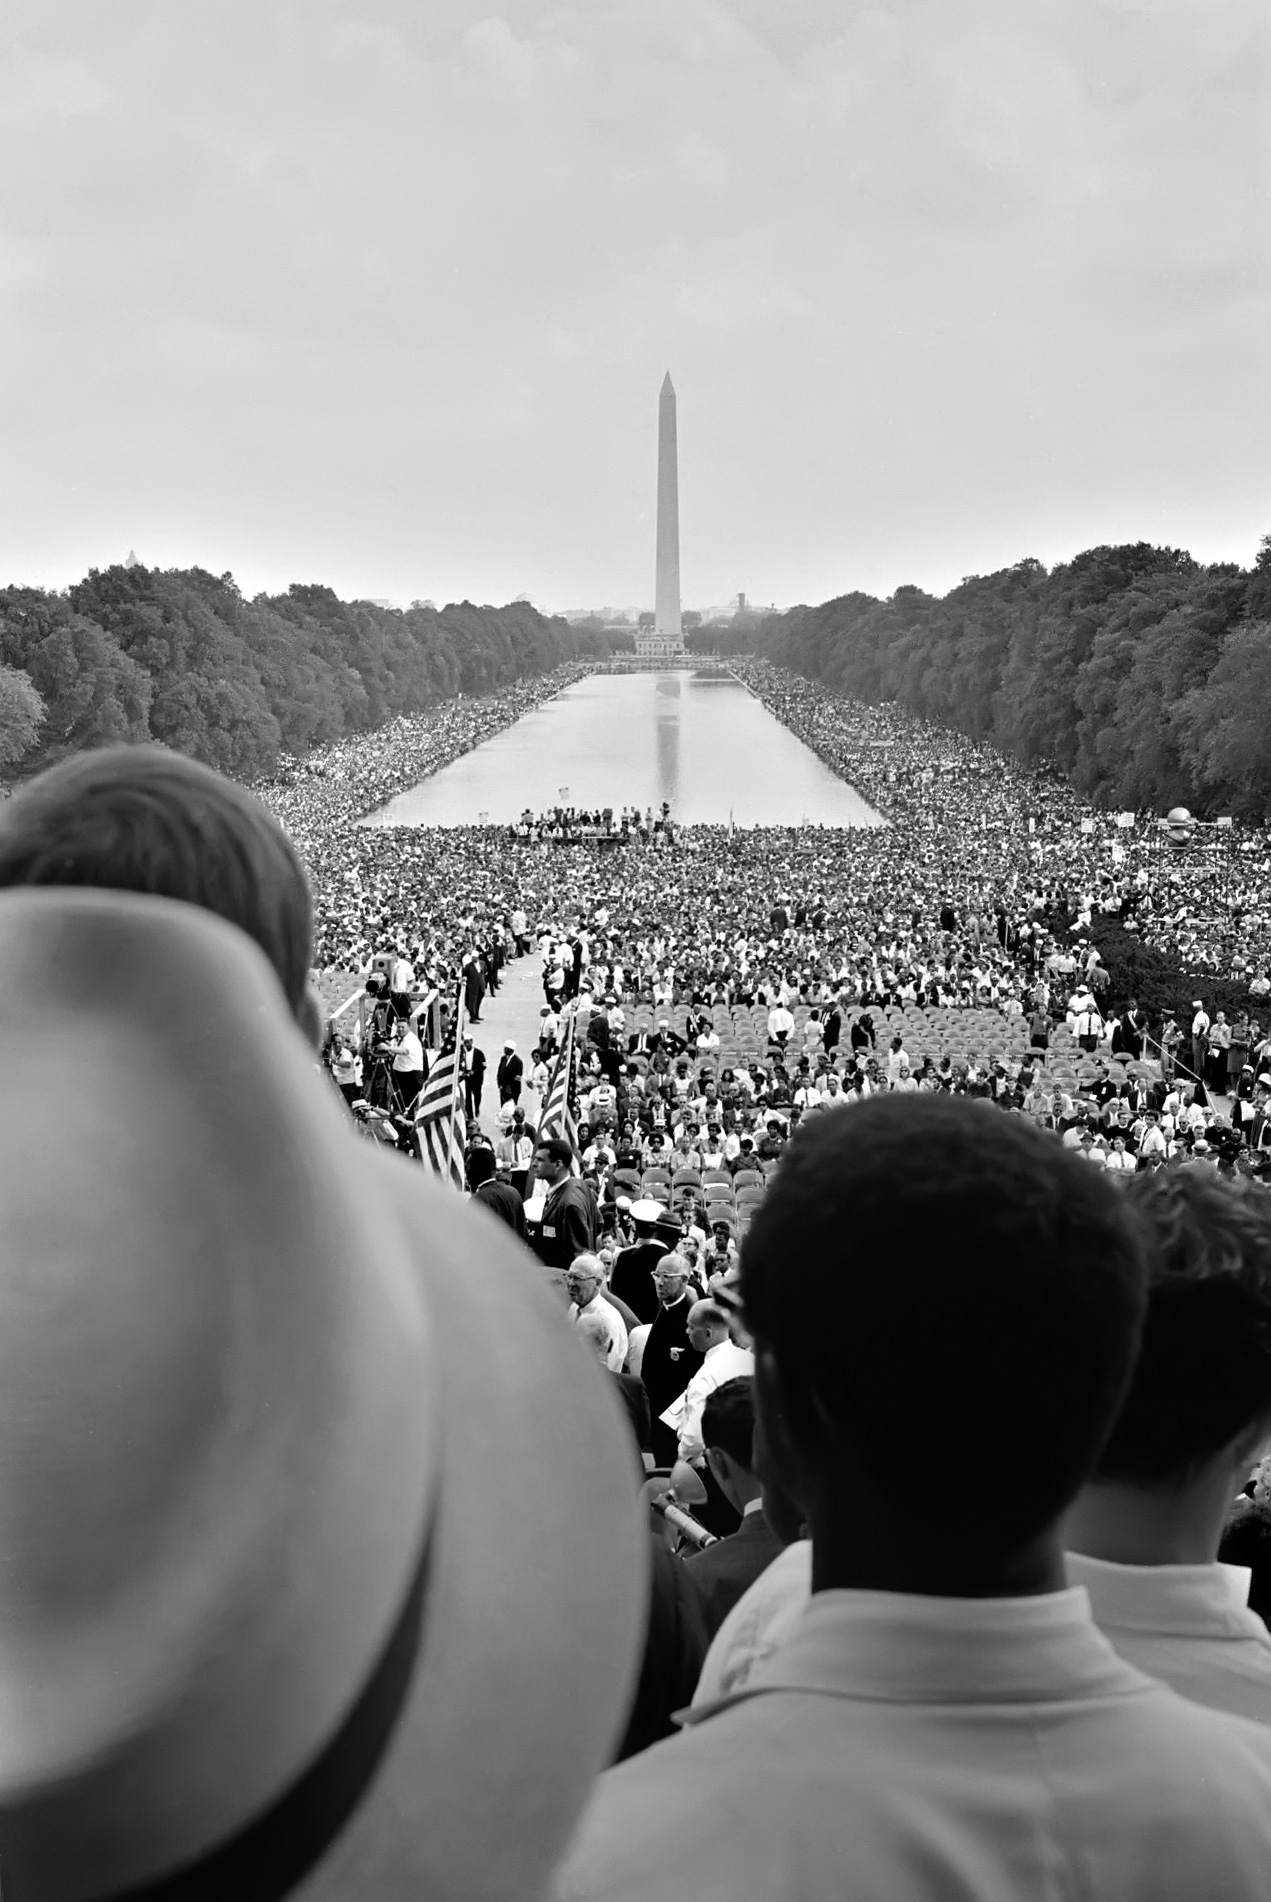 Crowd Surrounding the Reflecting Pool